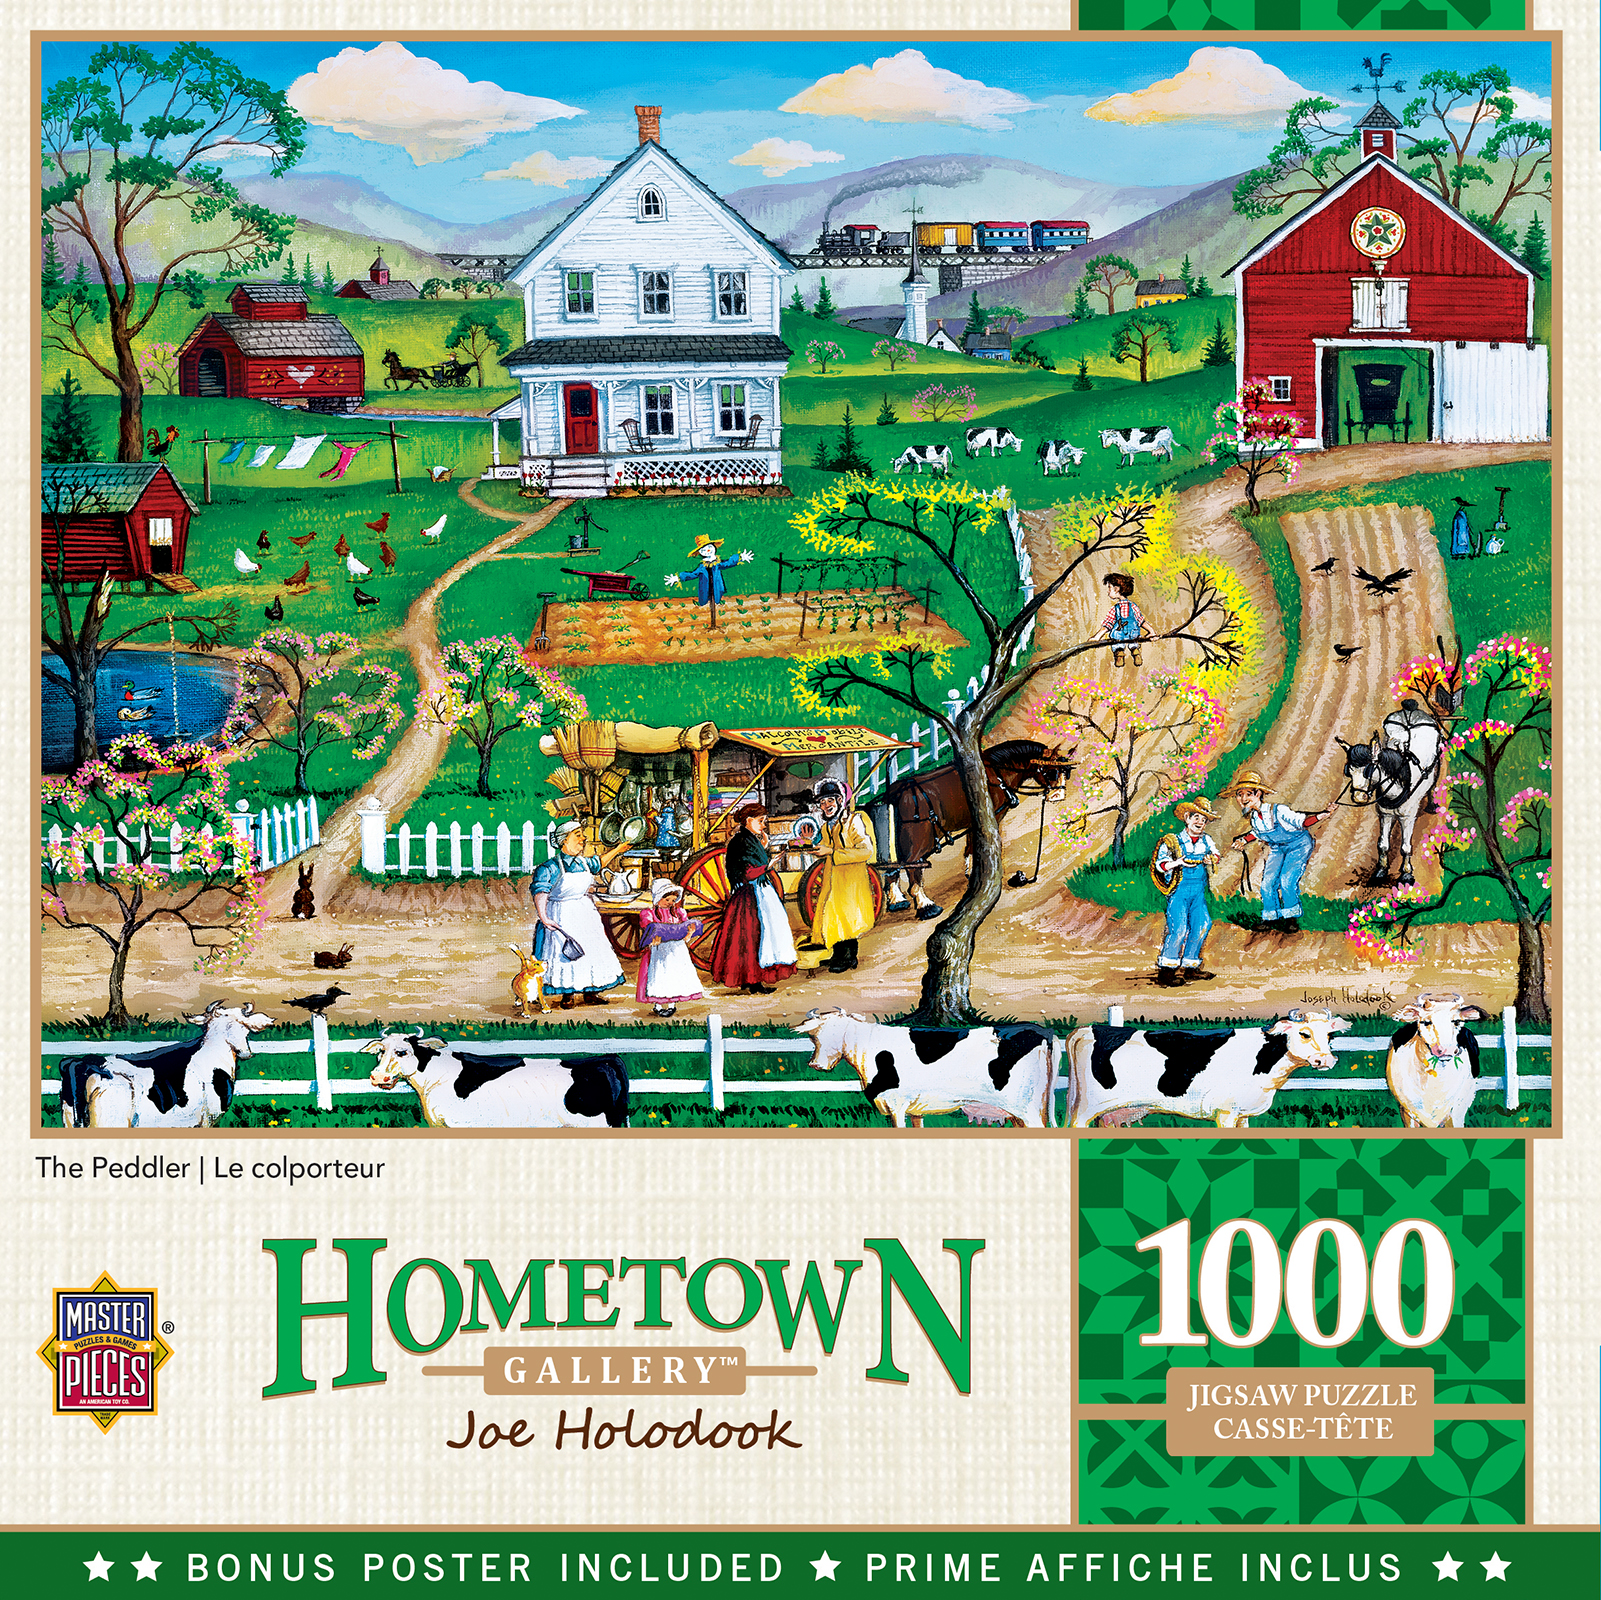 The Peddler Countryside Jigsaw Puzzle